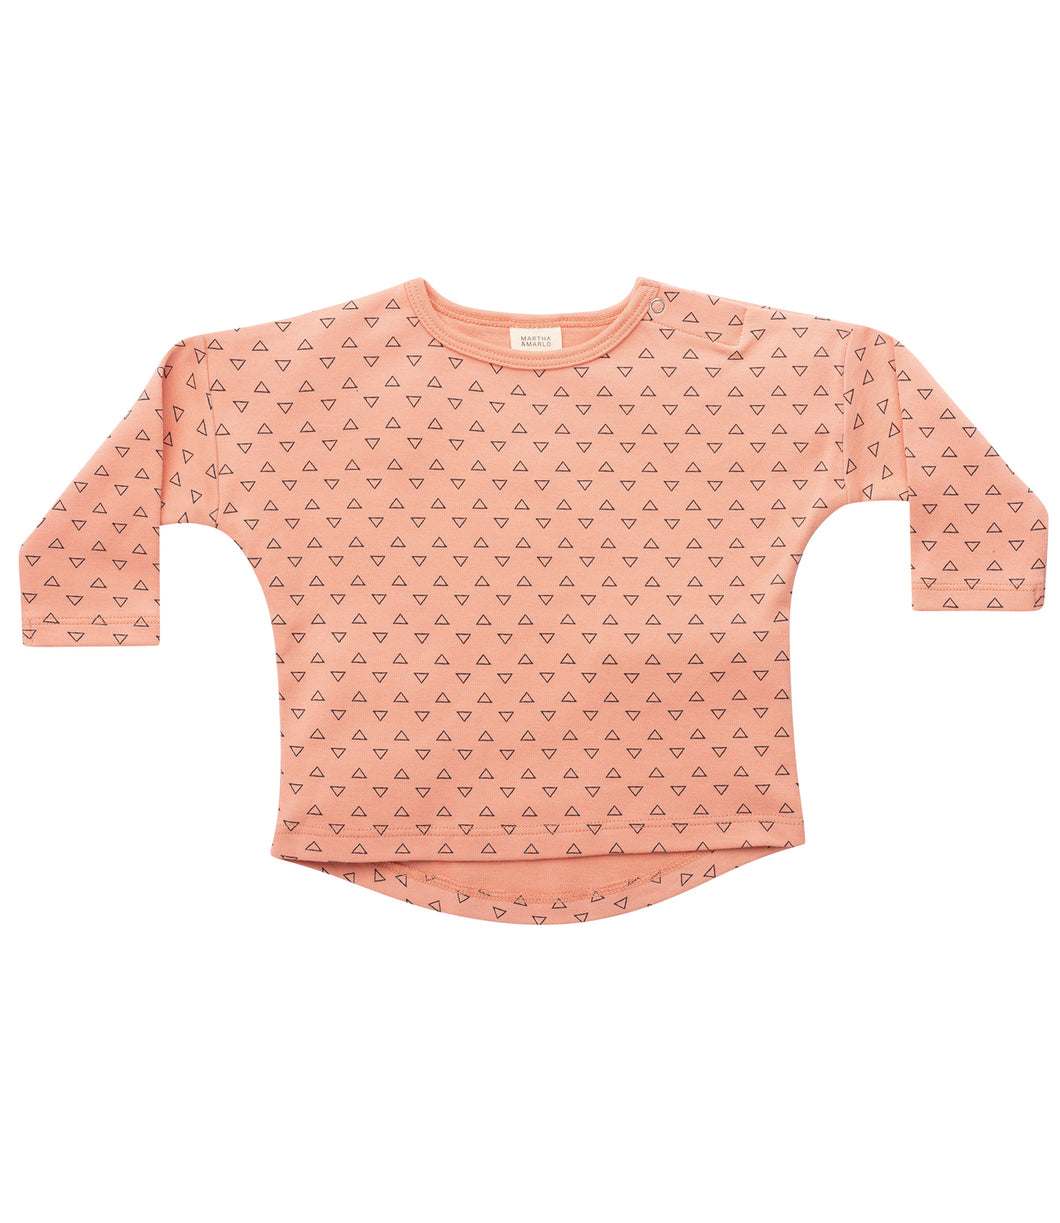 Martha & Marlo Baby Long Sleeve T-Shirt Organic Cotton Outline Print Pink